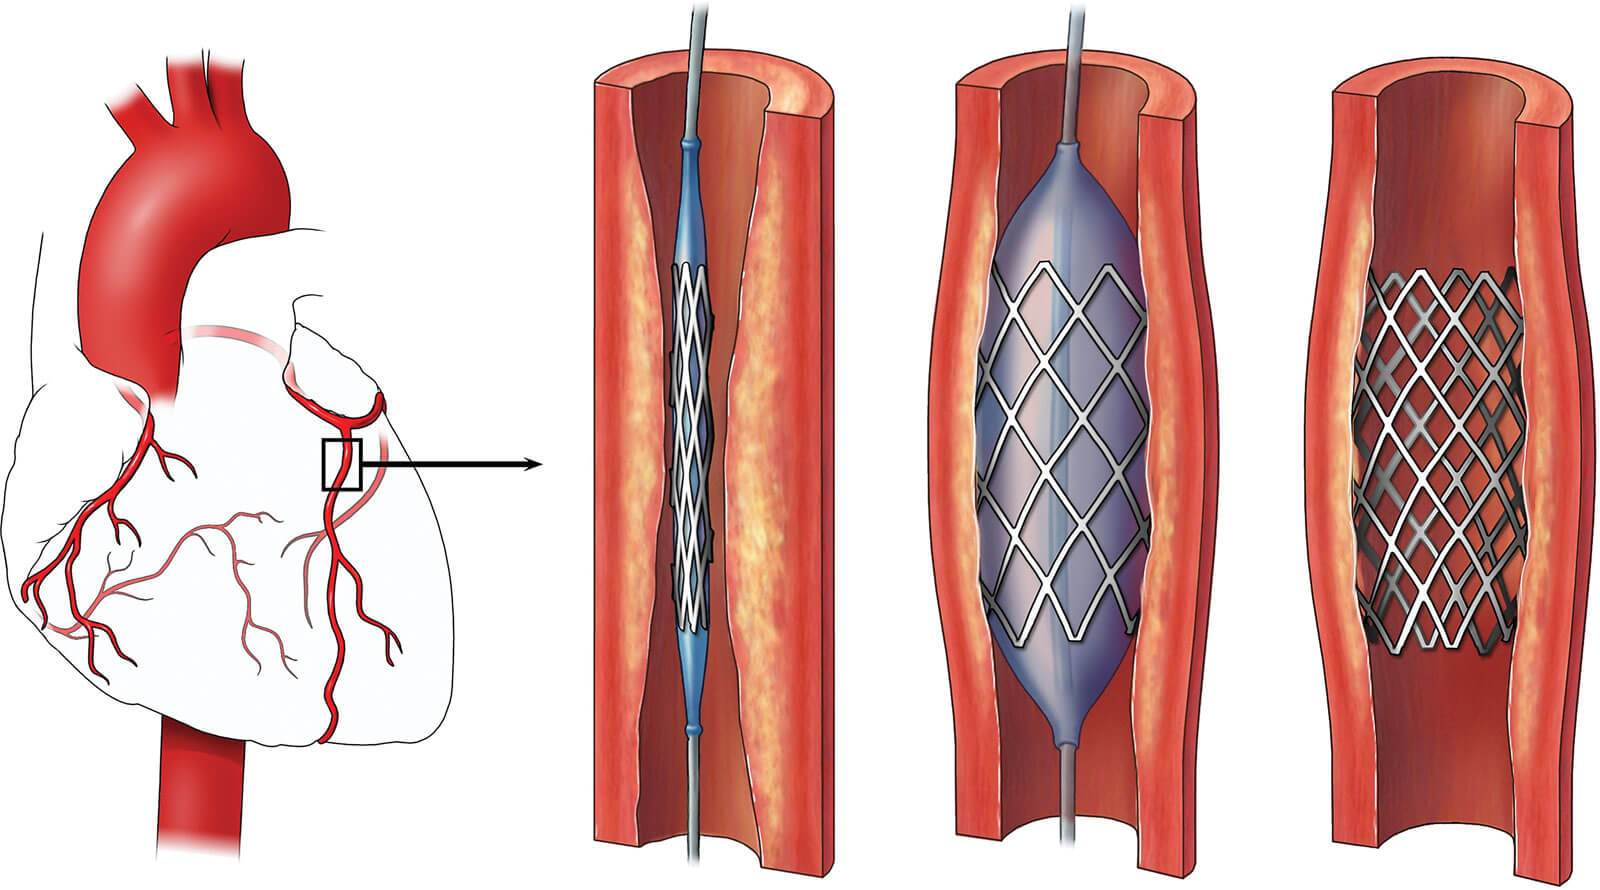 Global Intracranial Stents Market Segmented by Segment, Region, Size, Outlook, Share and Forecast 2020 | Market Density Report